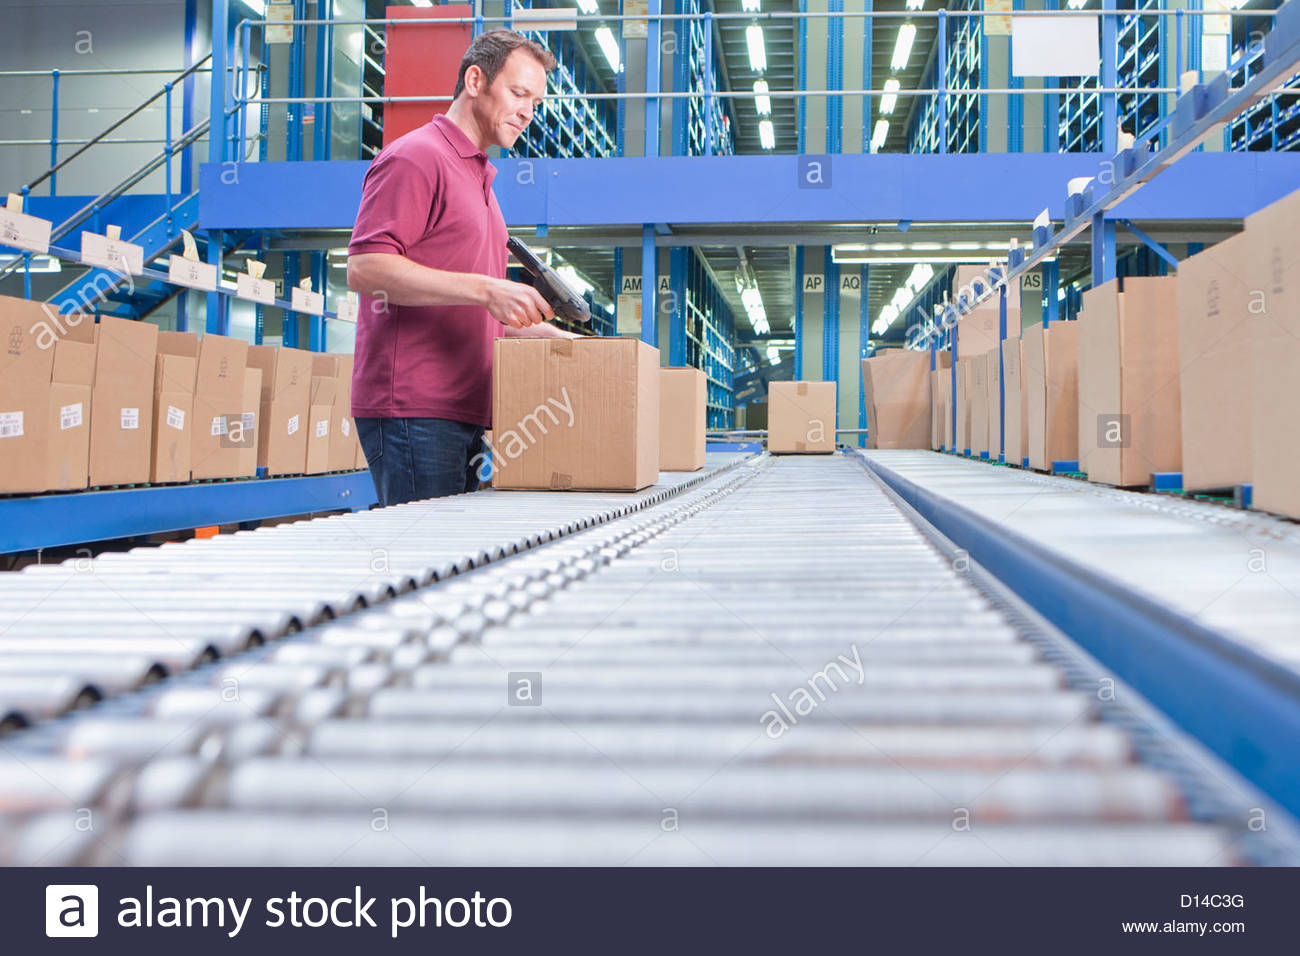 Worker with bar code reader scanning box on conveyor belt in distribution warehouse - Stock Image